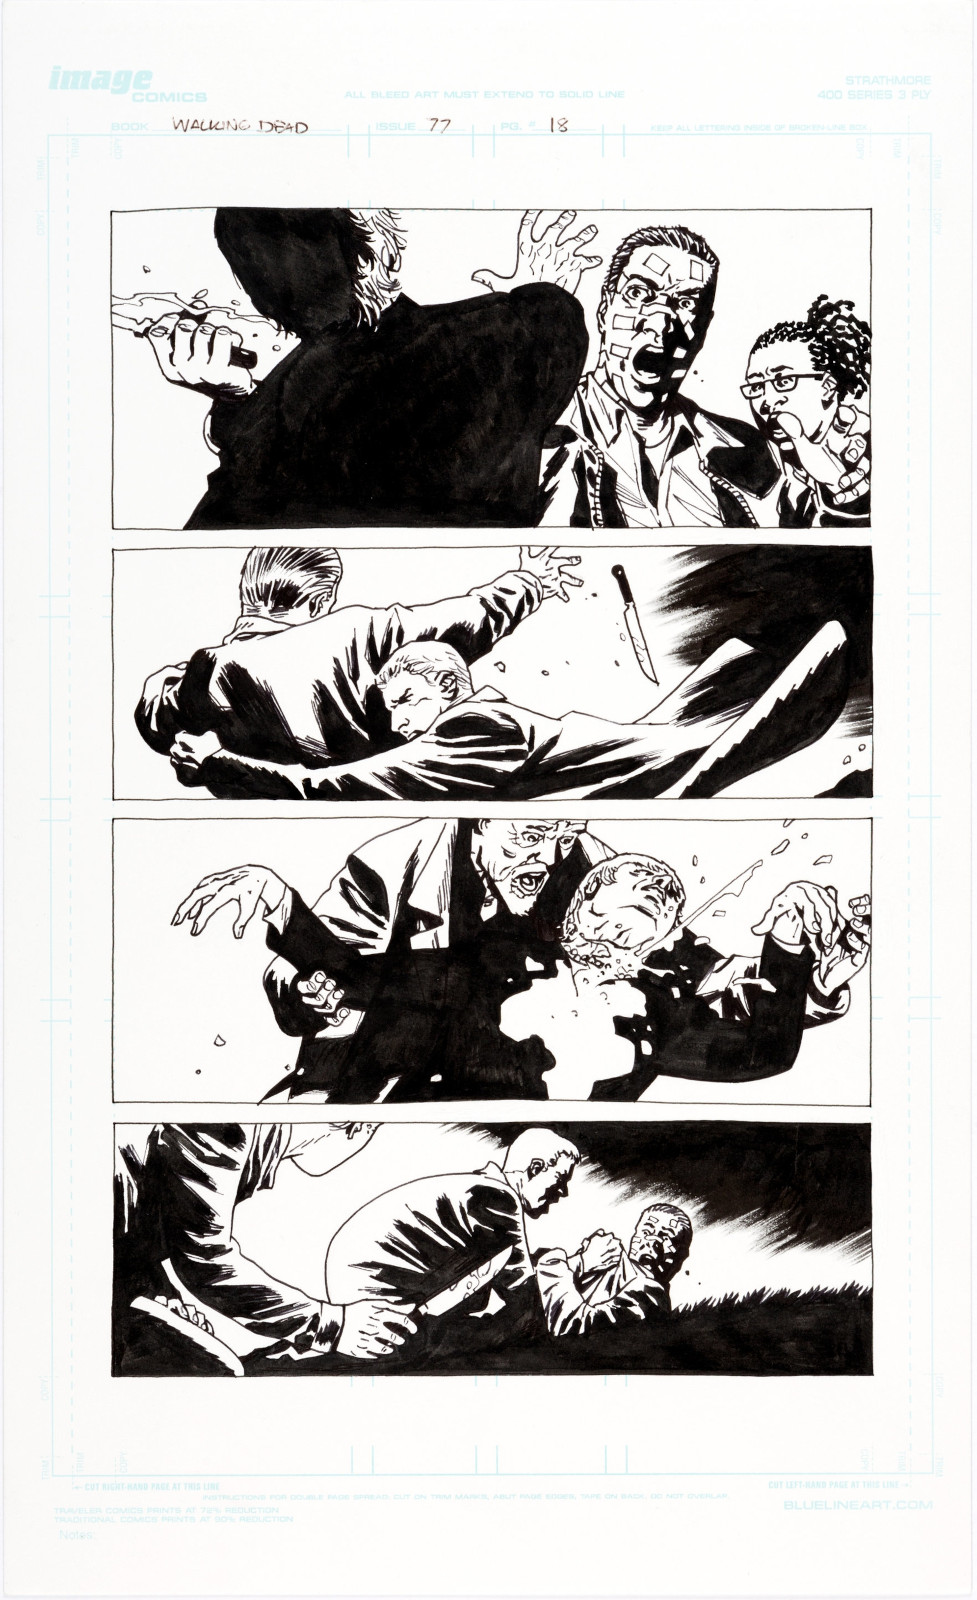 The Walking Dead issue 77 page 18 by Charlie Adlard